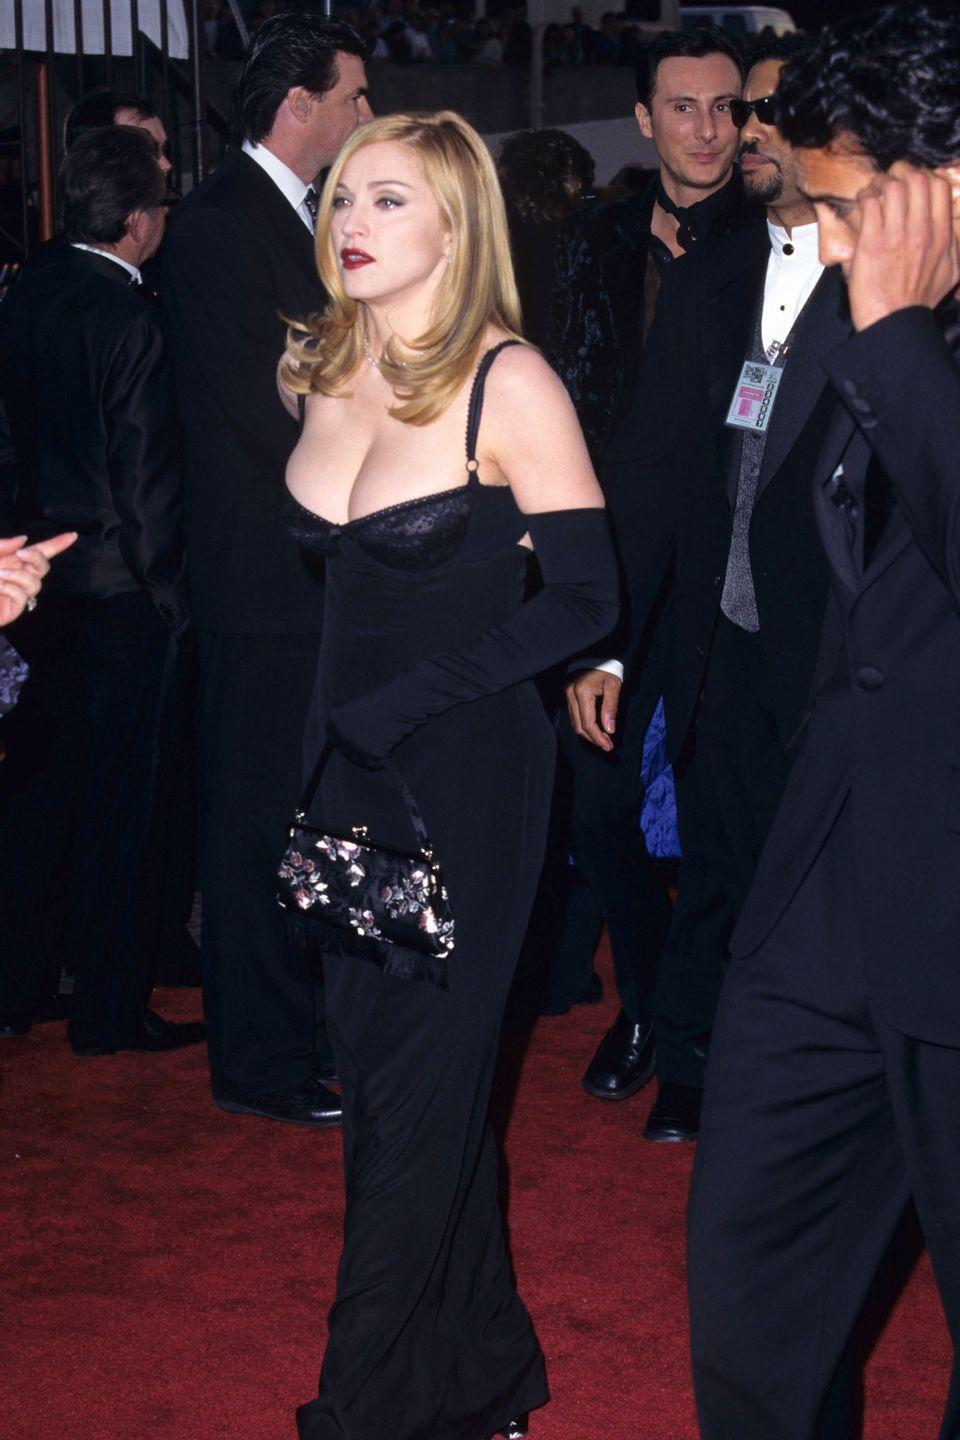 <p>Always known for risqué style, the queen of pop kept it classic in 1997 albeit with ample cleavage. </p>